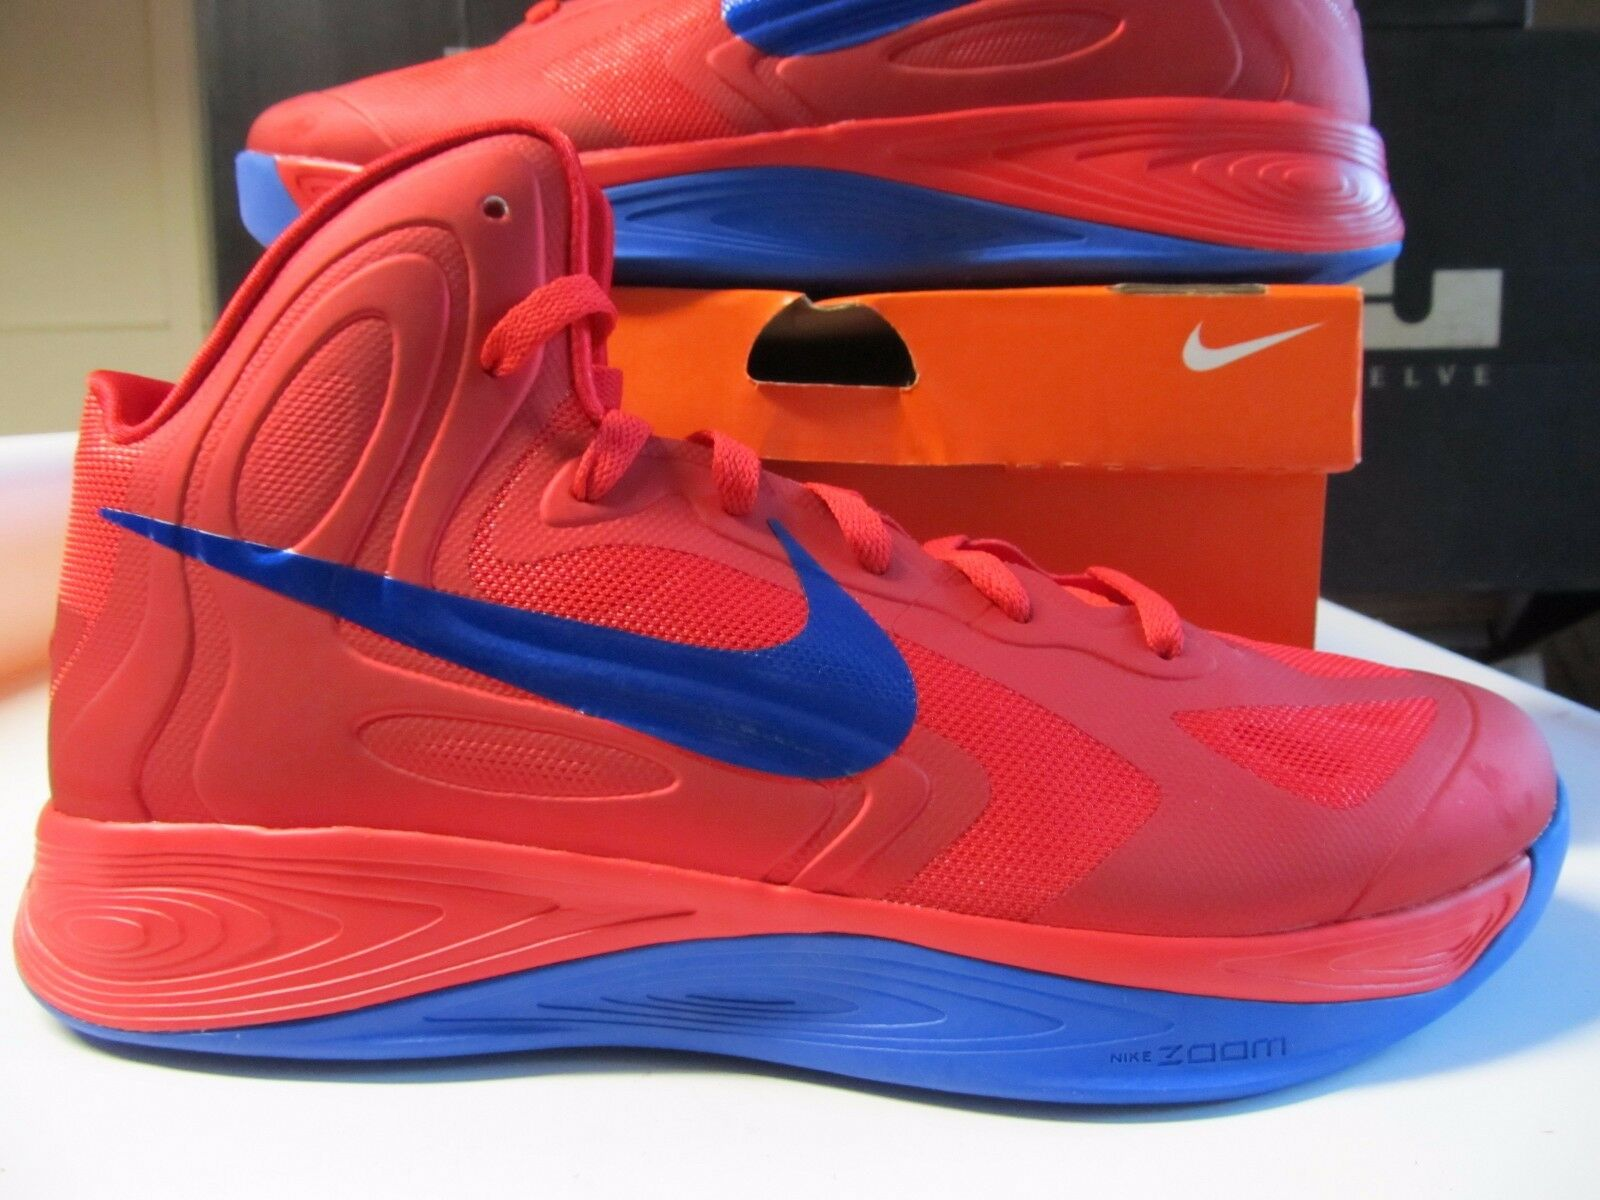 Nike Hyperfuse Universty Red Game Royal Blue 525022 061 Basketball volt olympics